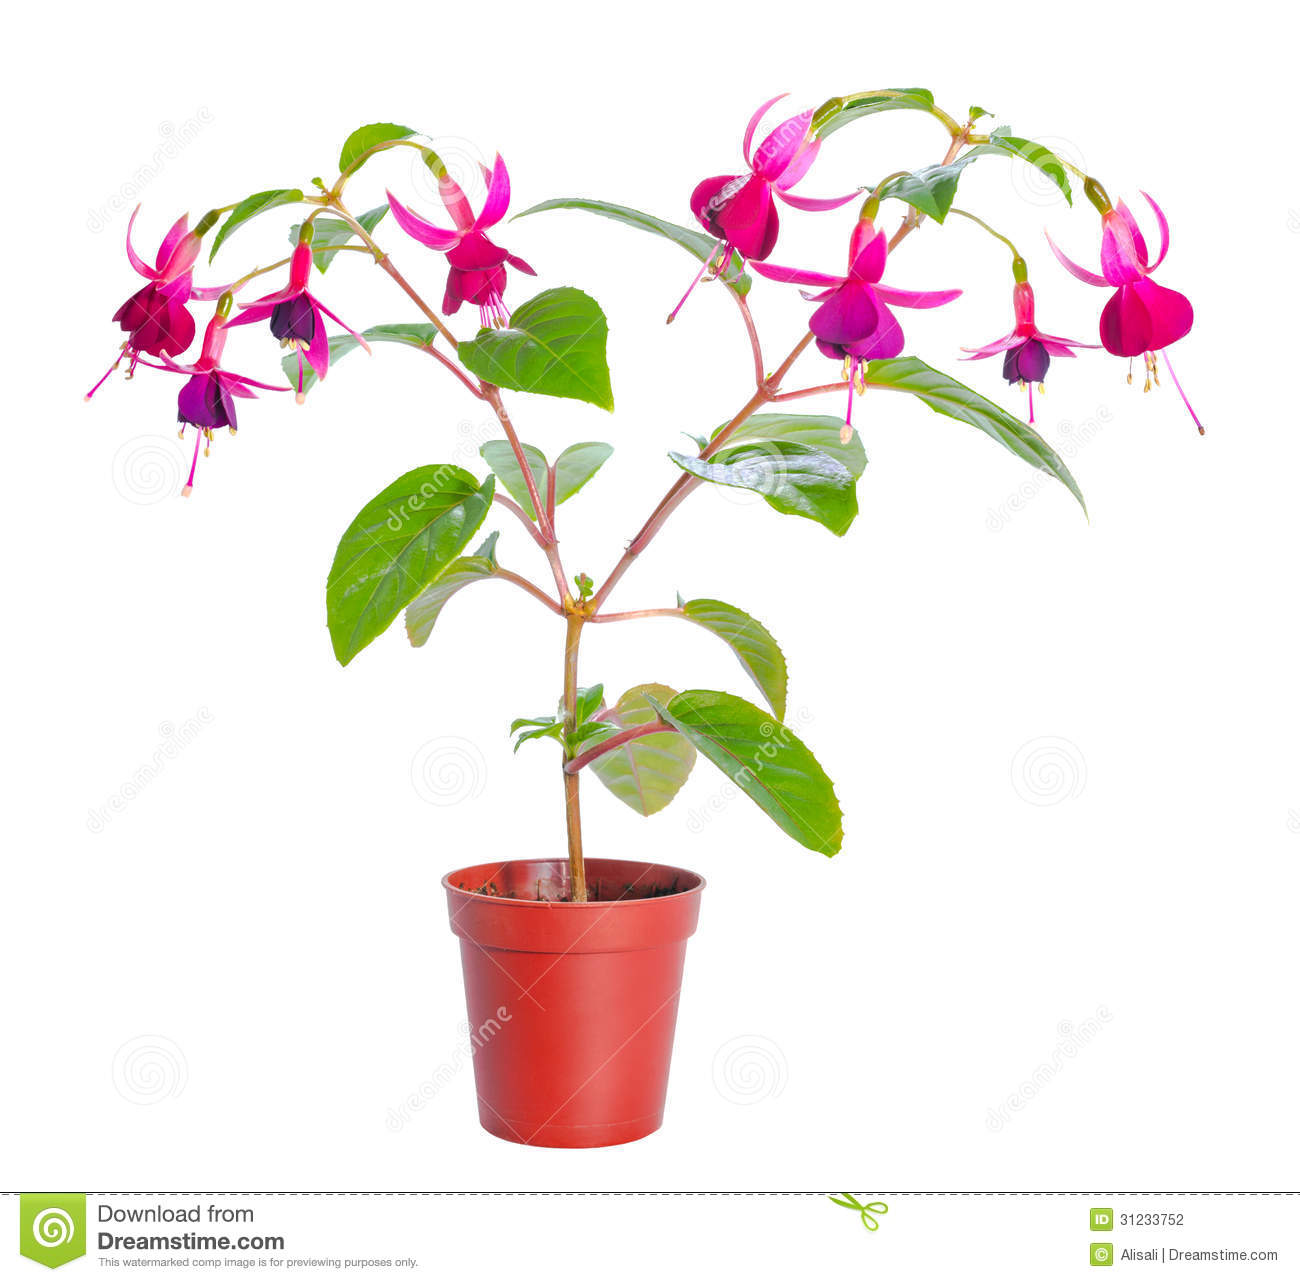 plantes d int rieur fuchsia de fleur dans le pot de fleur. Black Bedroom Furniture Sets. Home Design Ideas